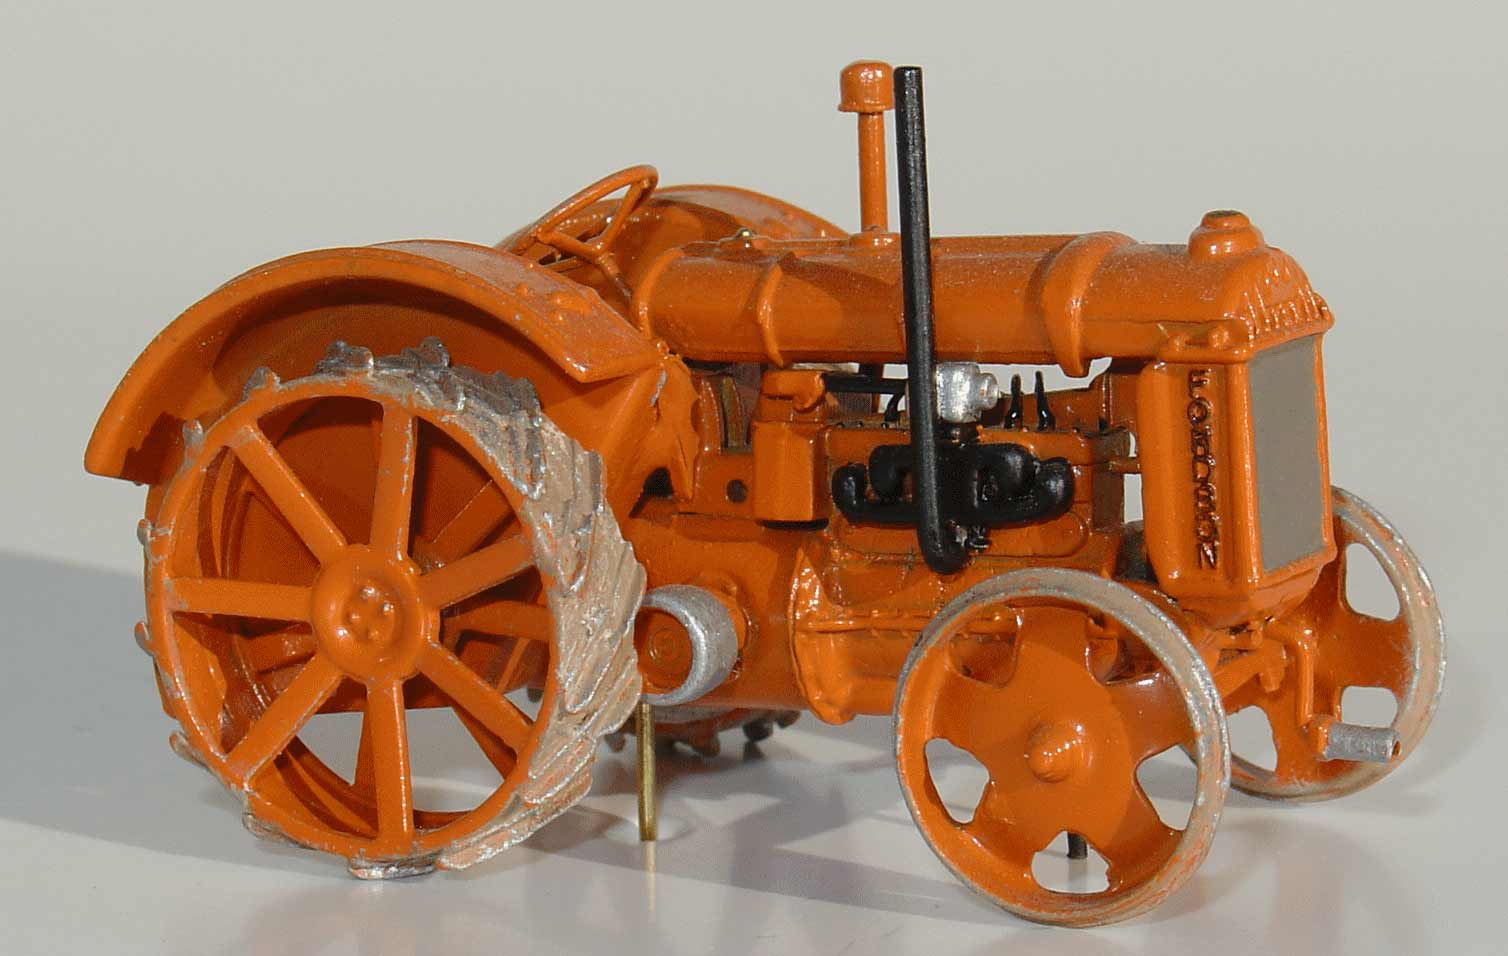 Steel Wheel Tractor : Duncan models